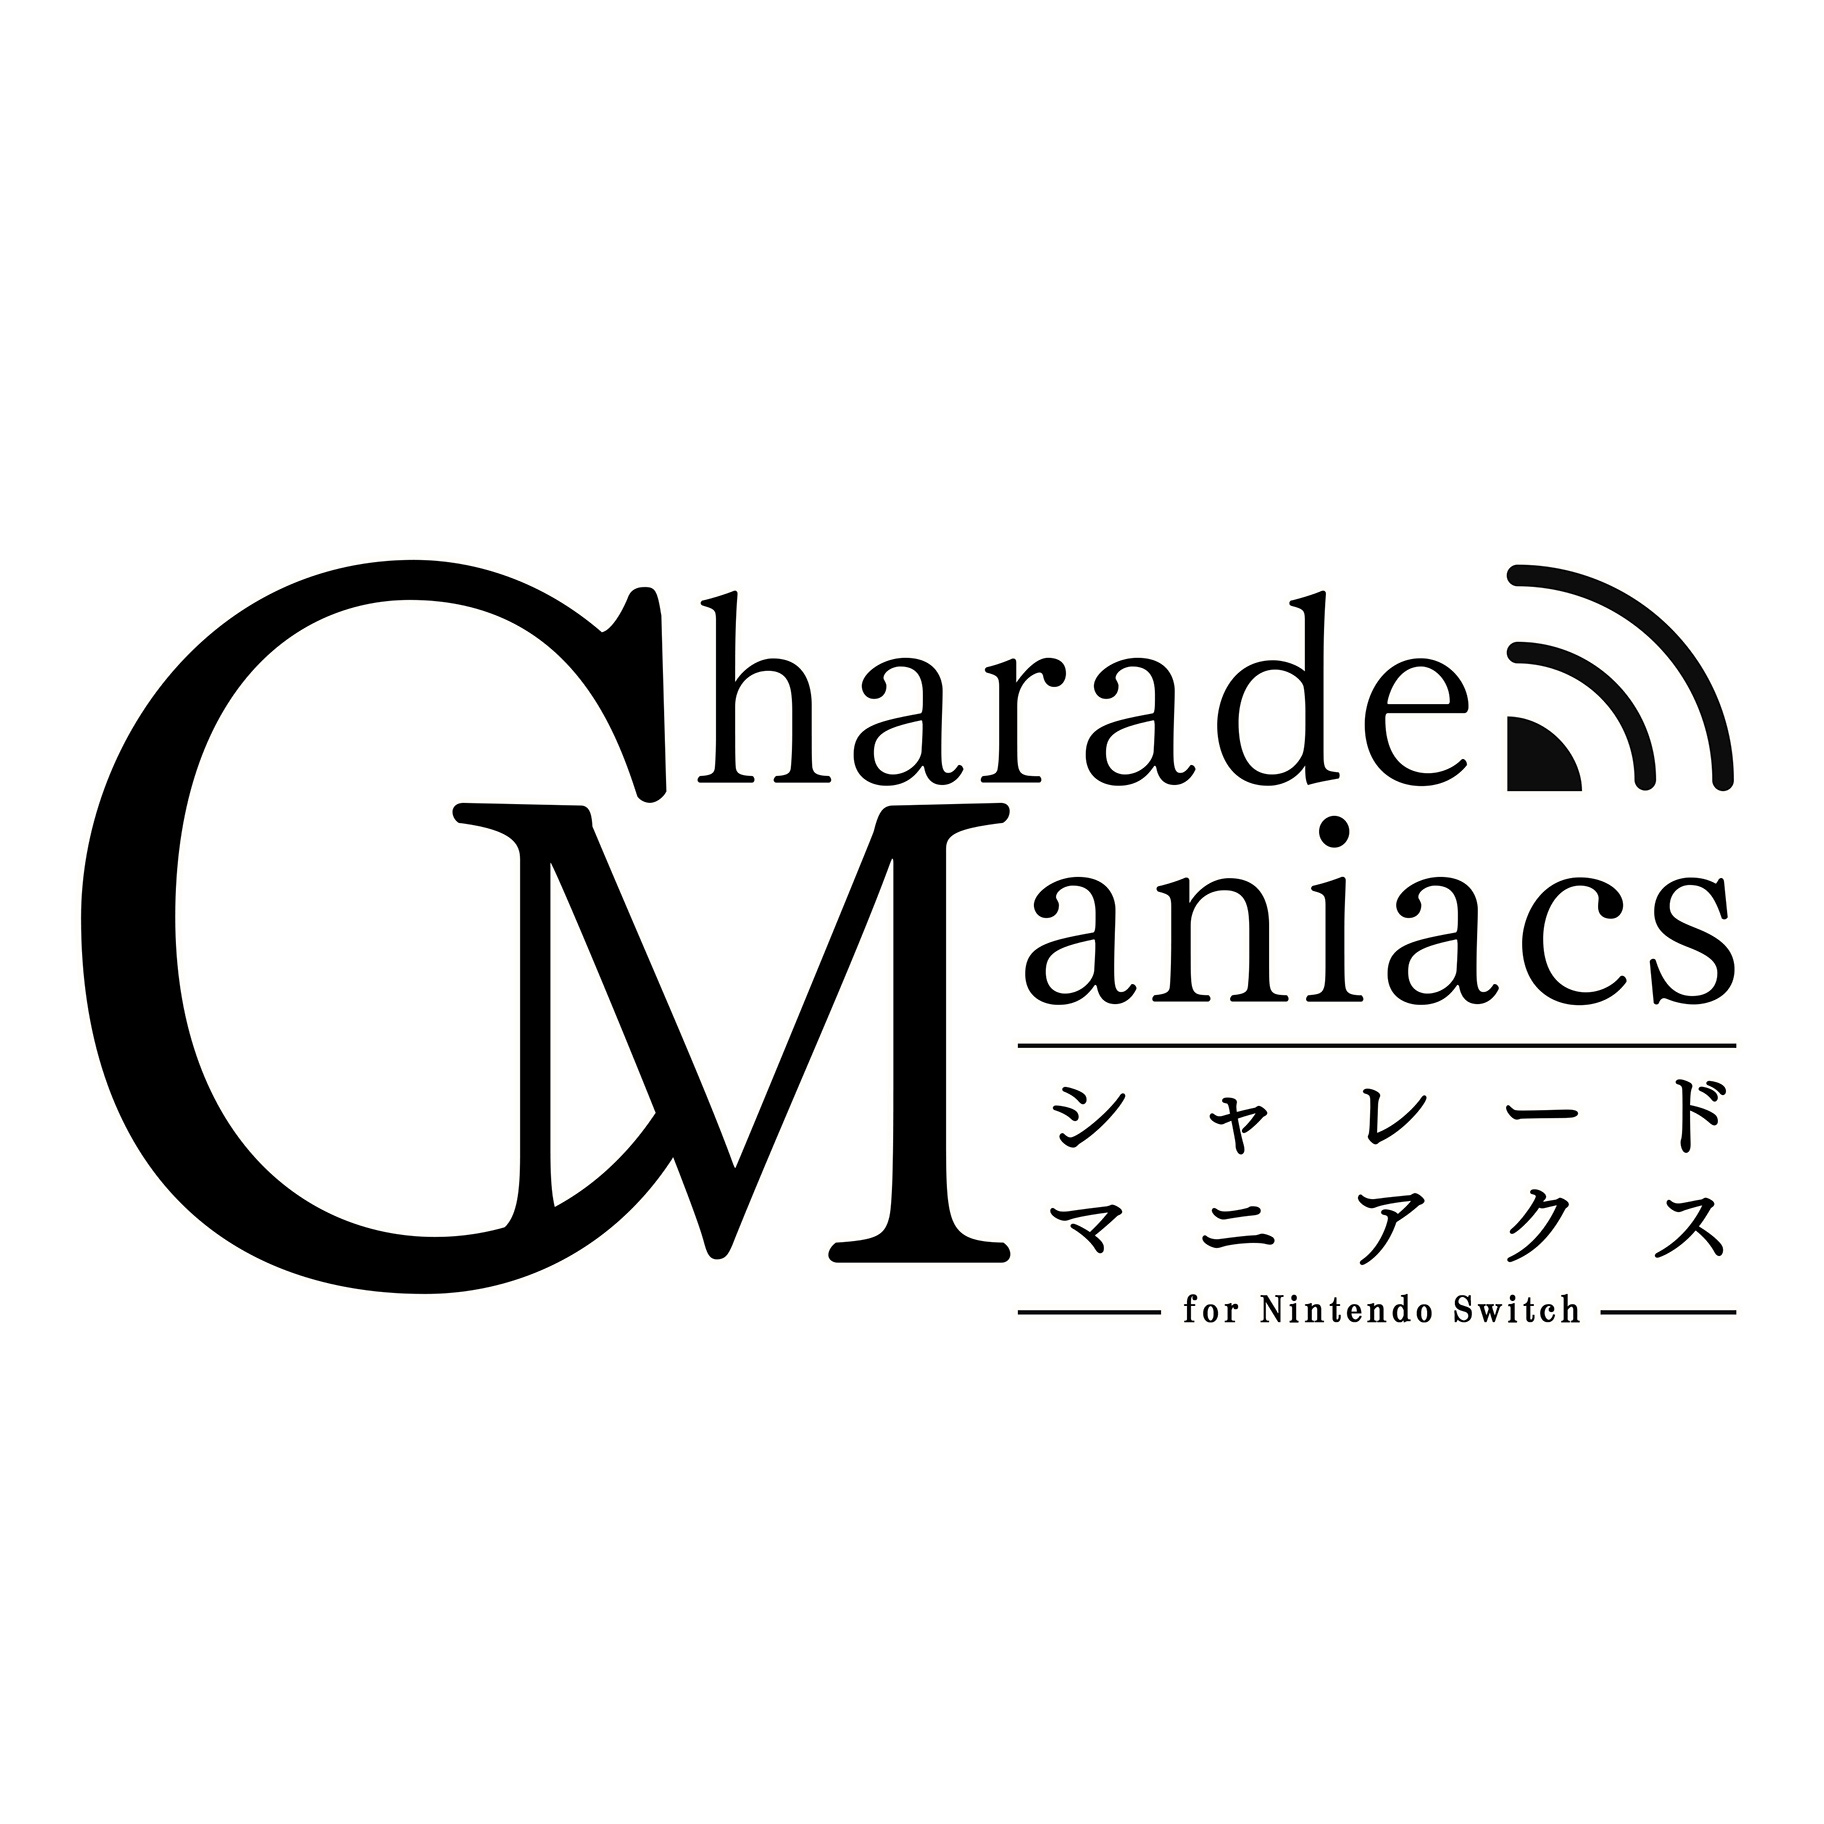 CharadeManiacs for Nintendo Switch 通常版 ソフマップ・アニメガ限定セット 【Switchゲームソフト】_2